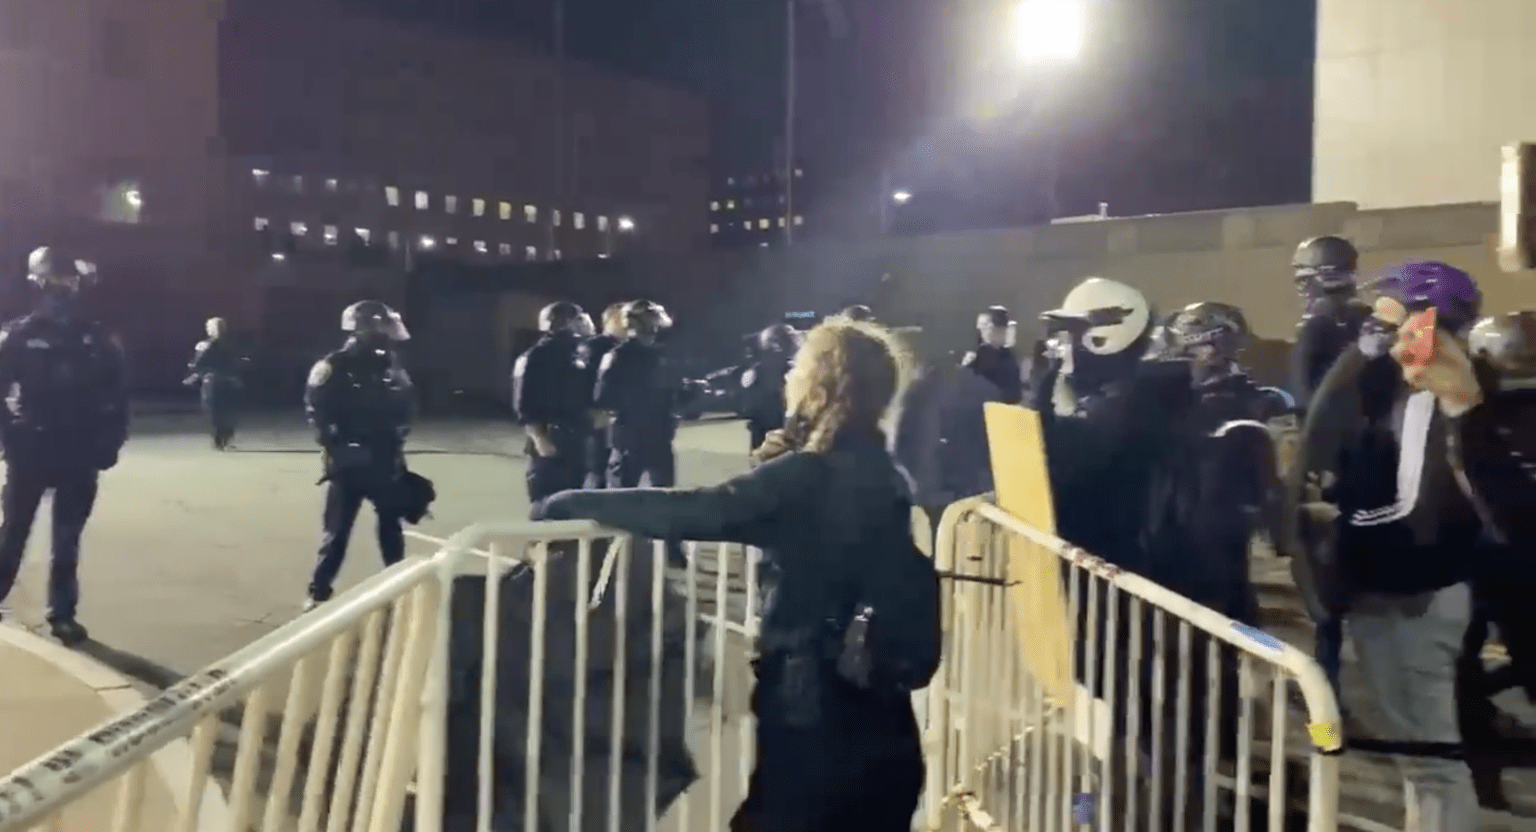 Rioters storm public safety building, attack officers after police arrest a man - three cops hospitalized